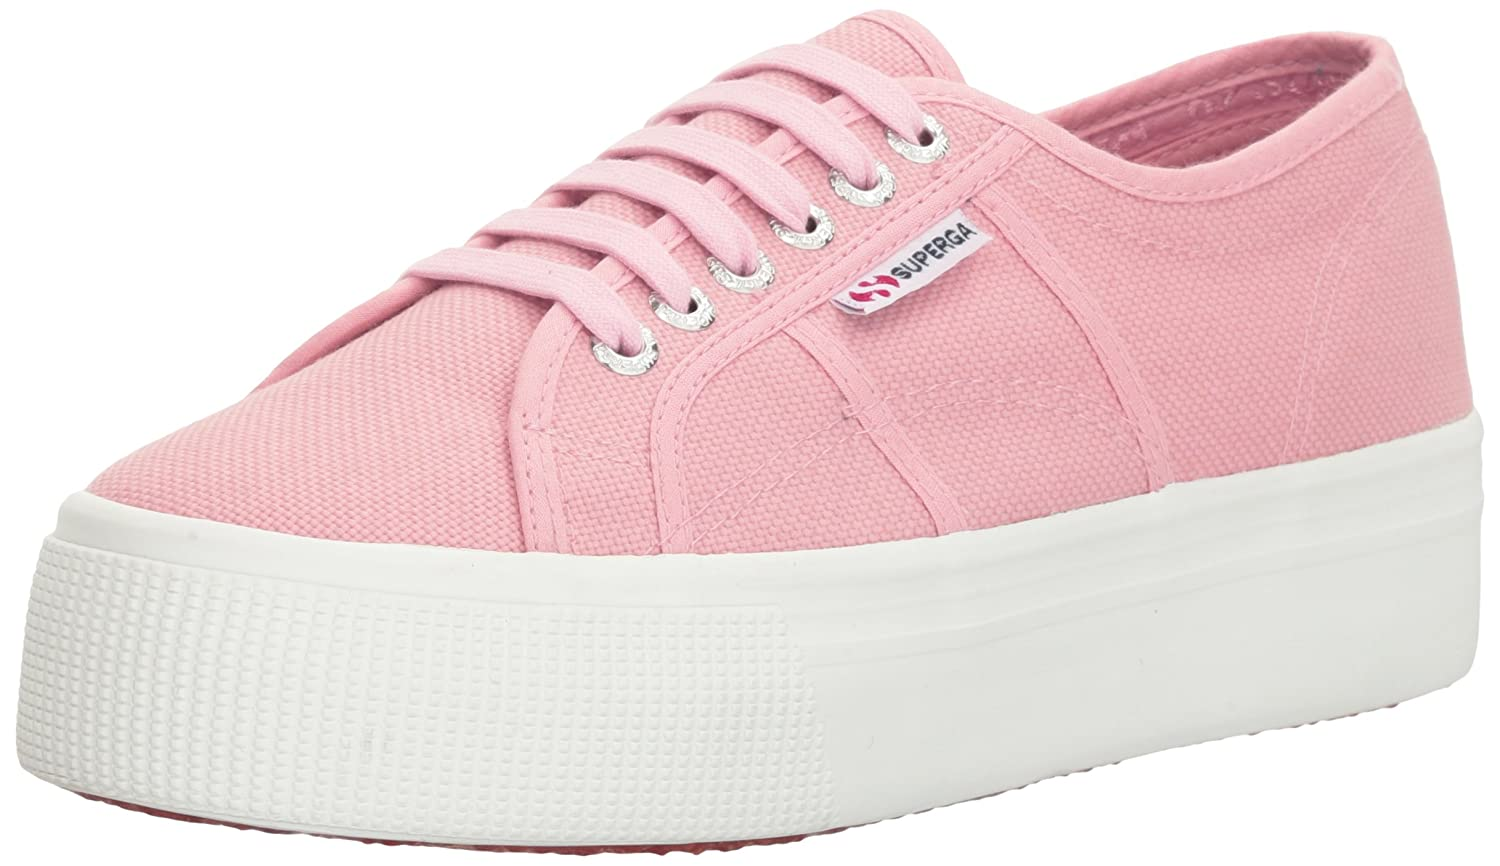 Superga Acotw Linea Up And Down Turnschuhe Leinwand Turnschuhe Down Hellrosa f2b112